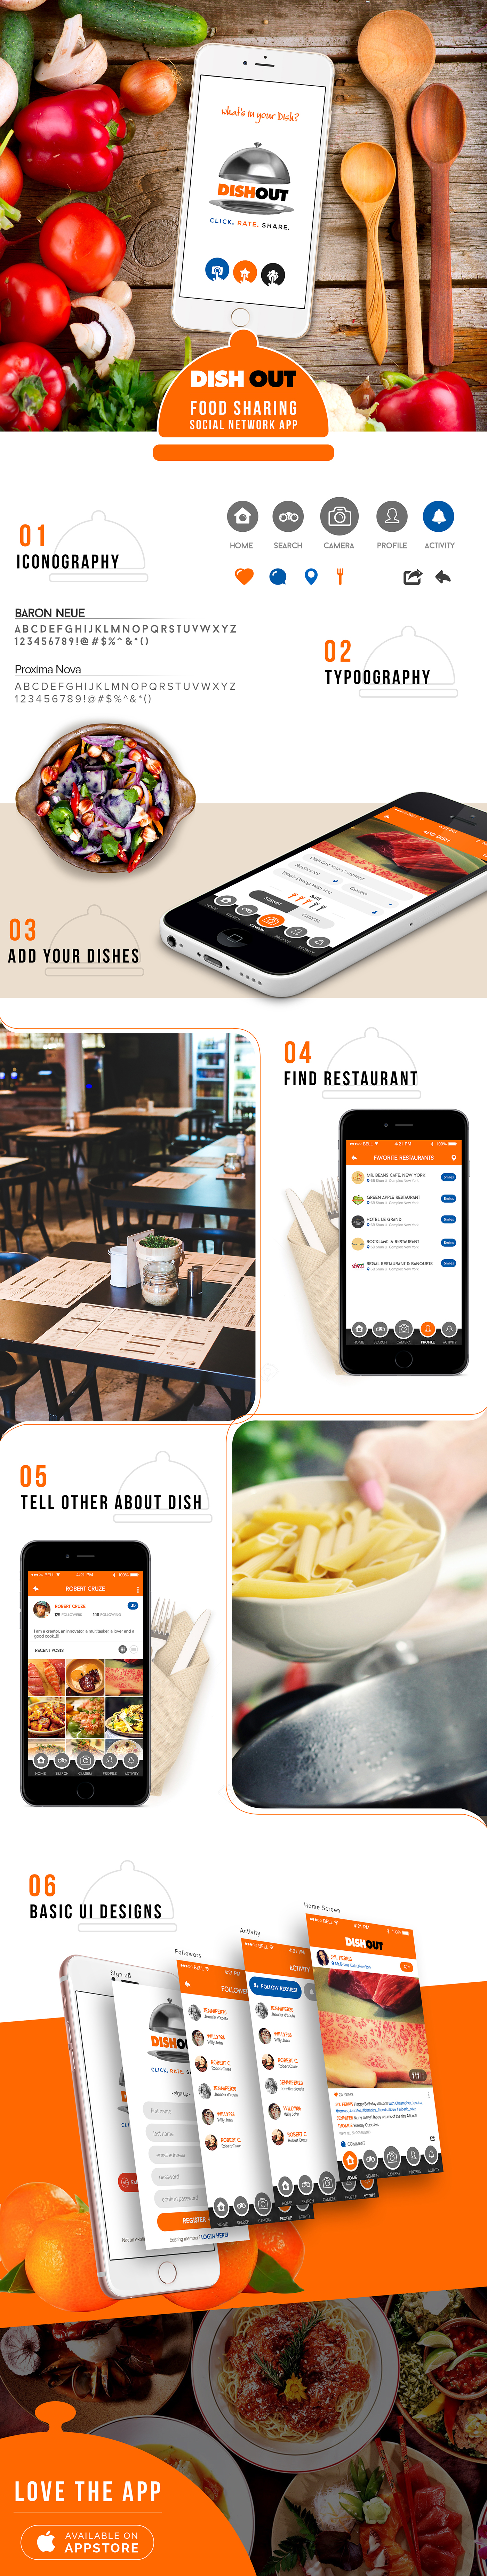 Food sharing social network app on behance dish out is a social networking application which allows foodie users to share the images of their best food dishes either from their favorite restaurant or forumfinder Image collections